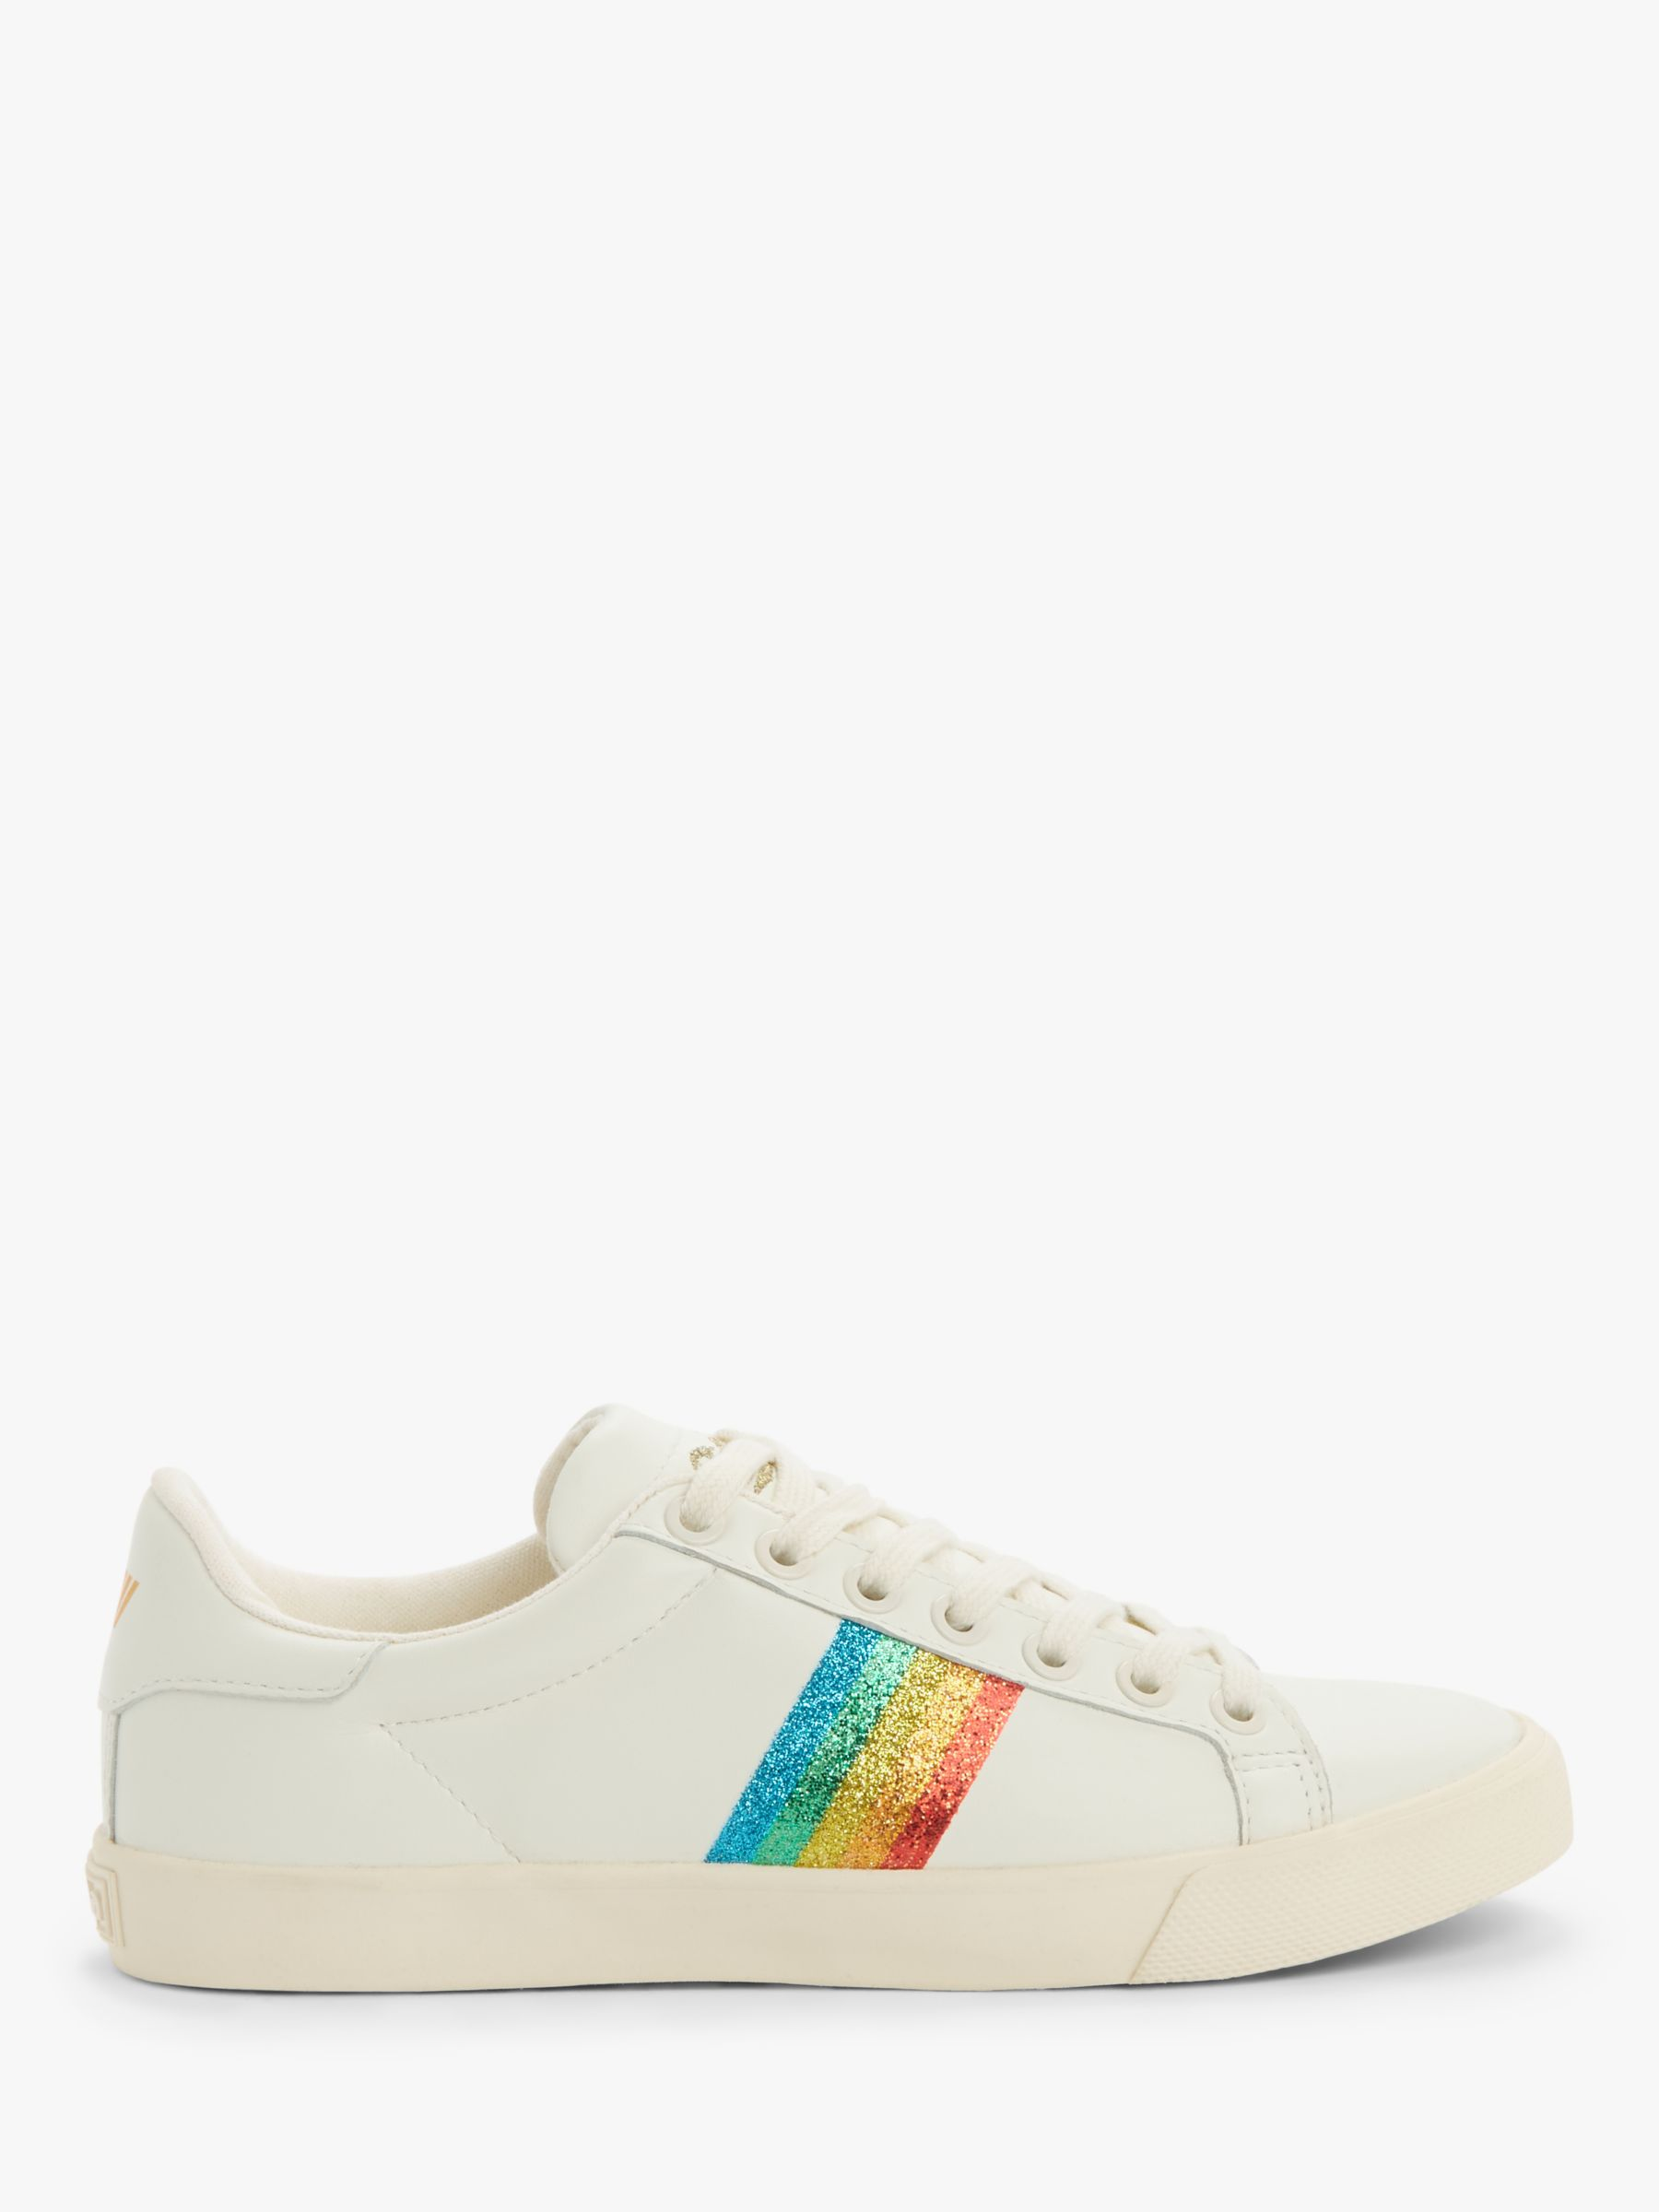 Gola Gola Orchid Rainbow Low Top Trainers, Off White/Multi Glitter